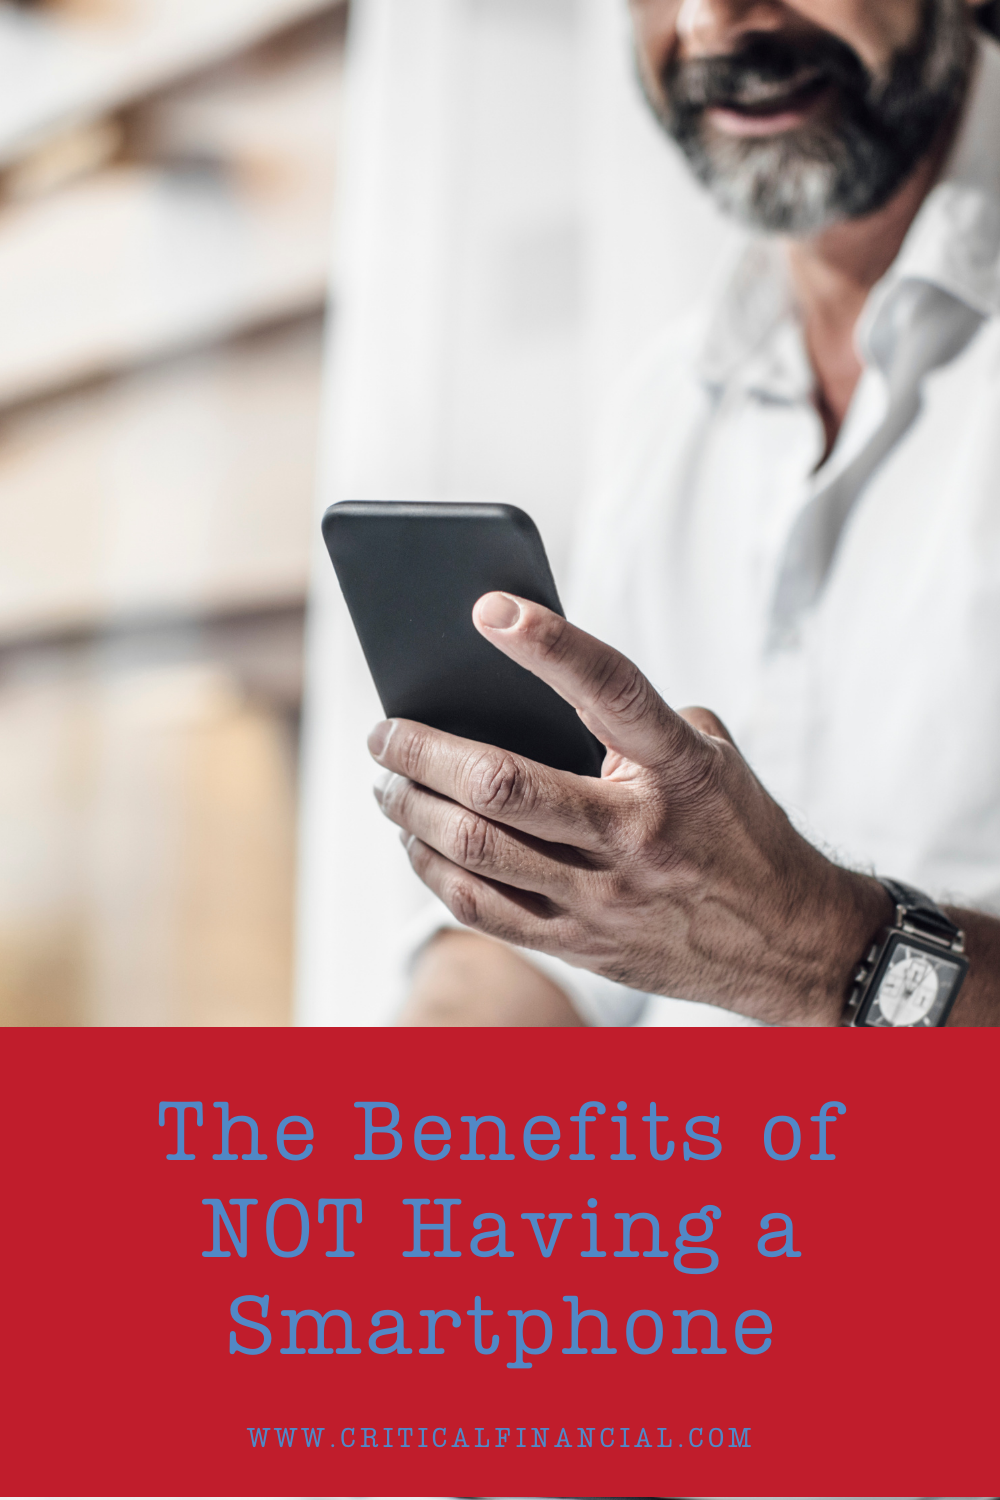 The Benefits of NOT Having a Smartphone